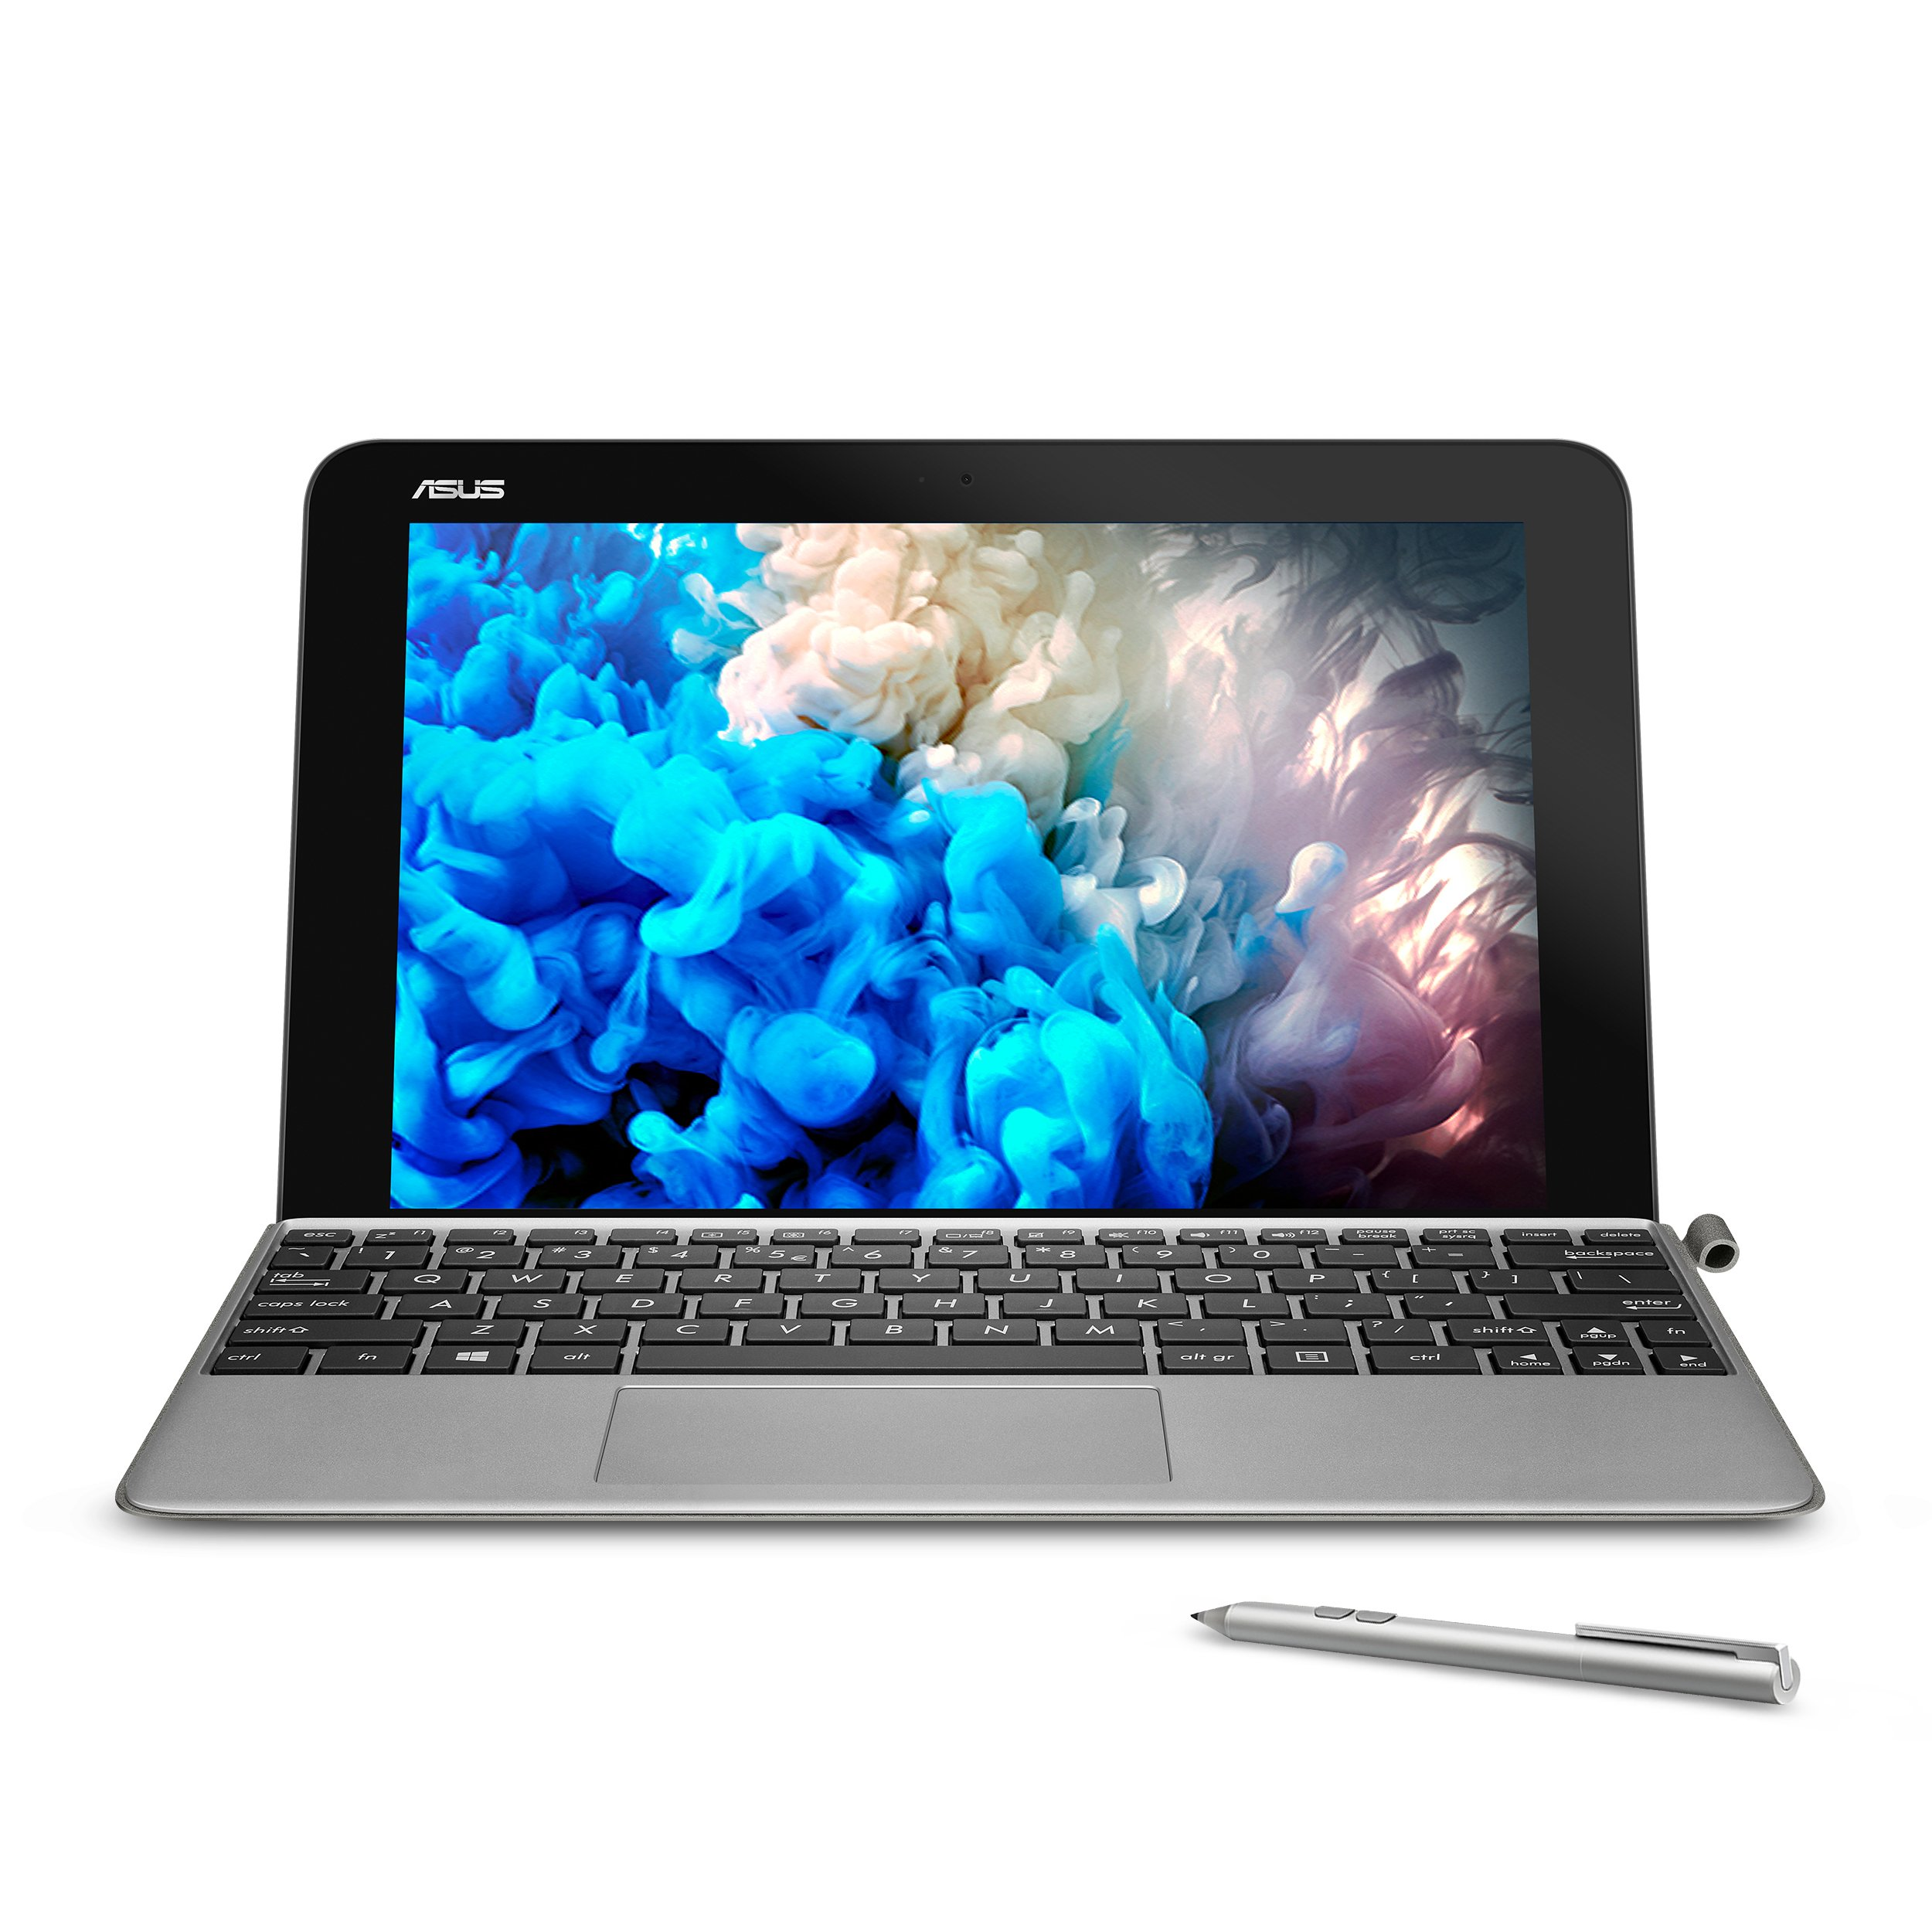 """ASUS 10.1"""" Transformer Mini T103HA-D4-GR, 2 in 1 Touchscreen Laptop, Intel Quad-Core, 128GB SSD, Grey, pen and keyboard included"""